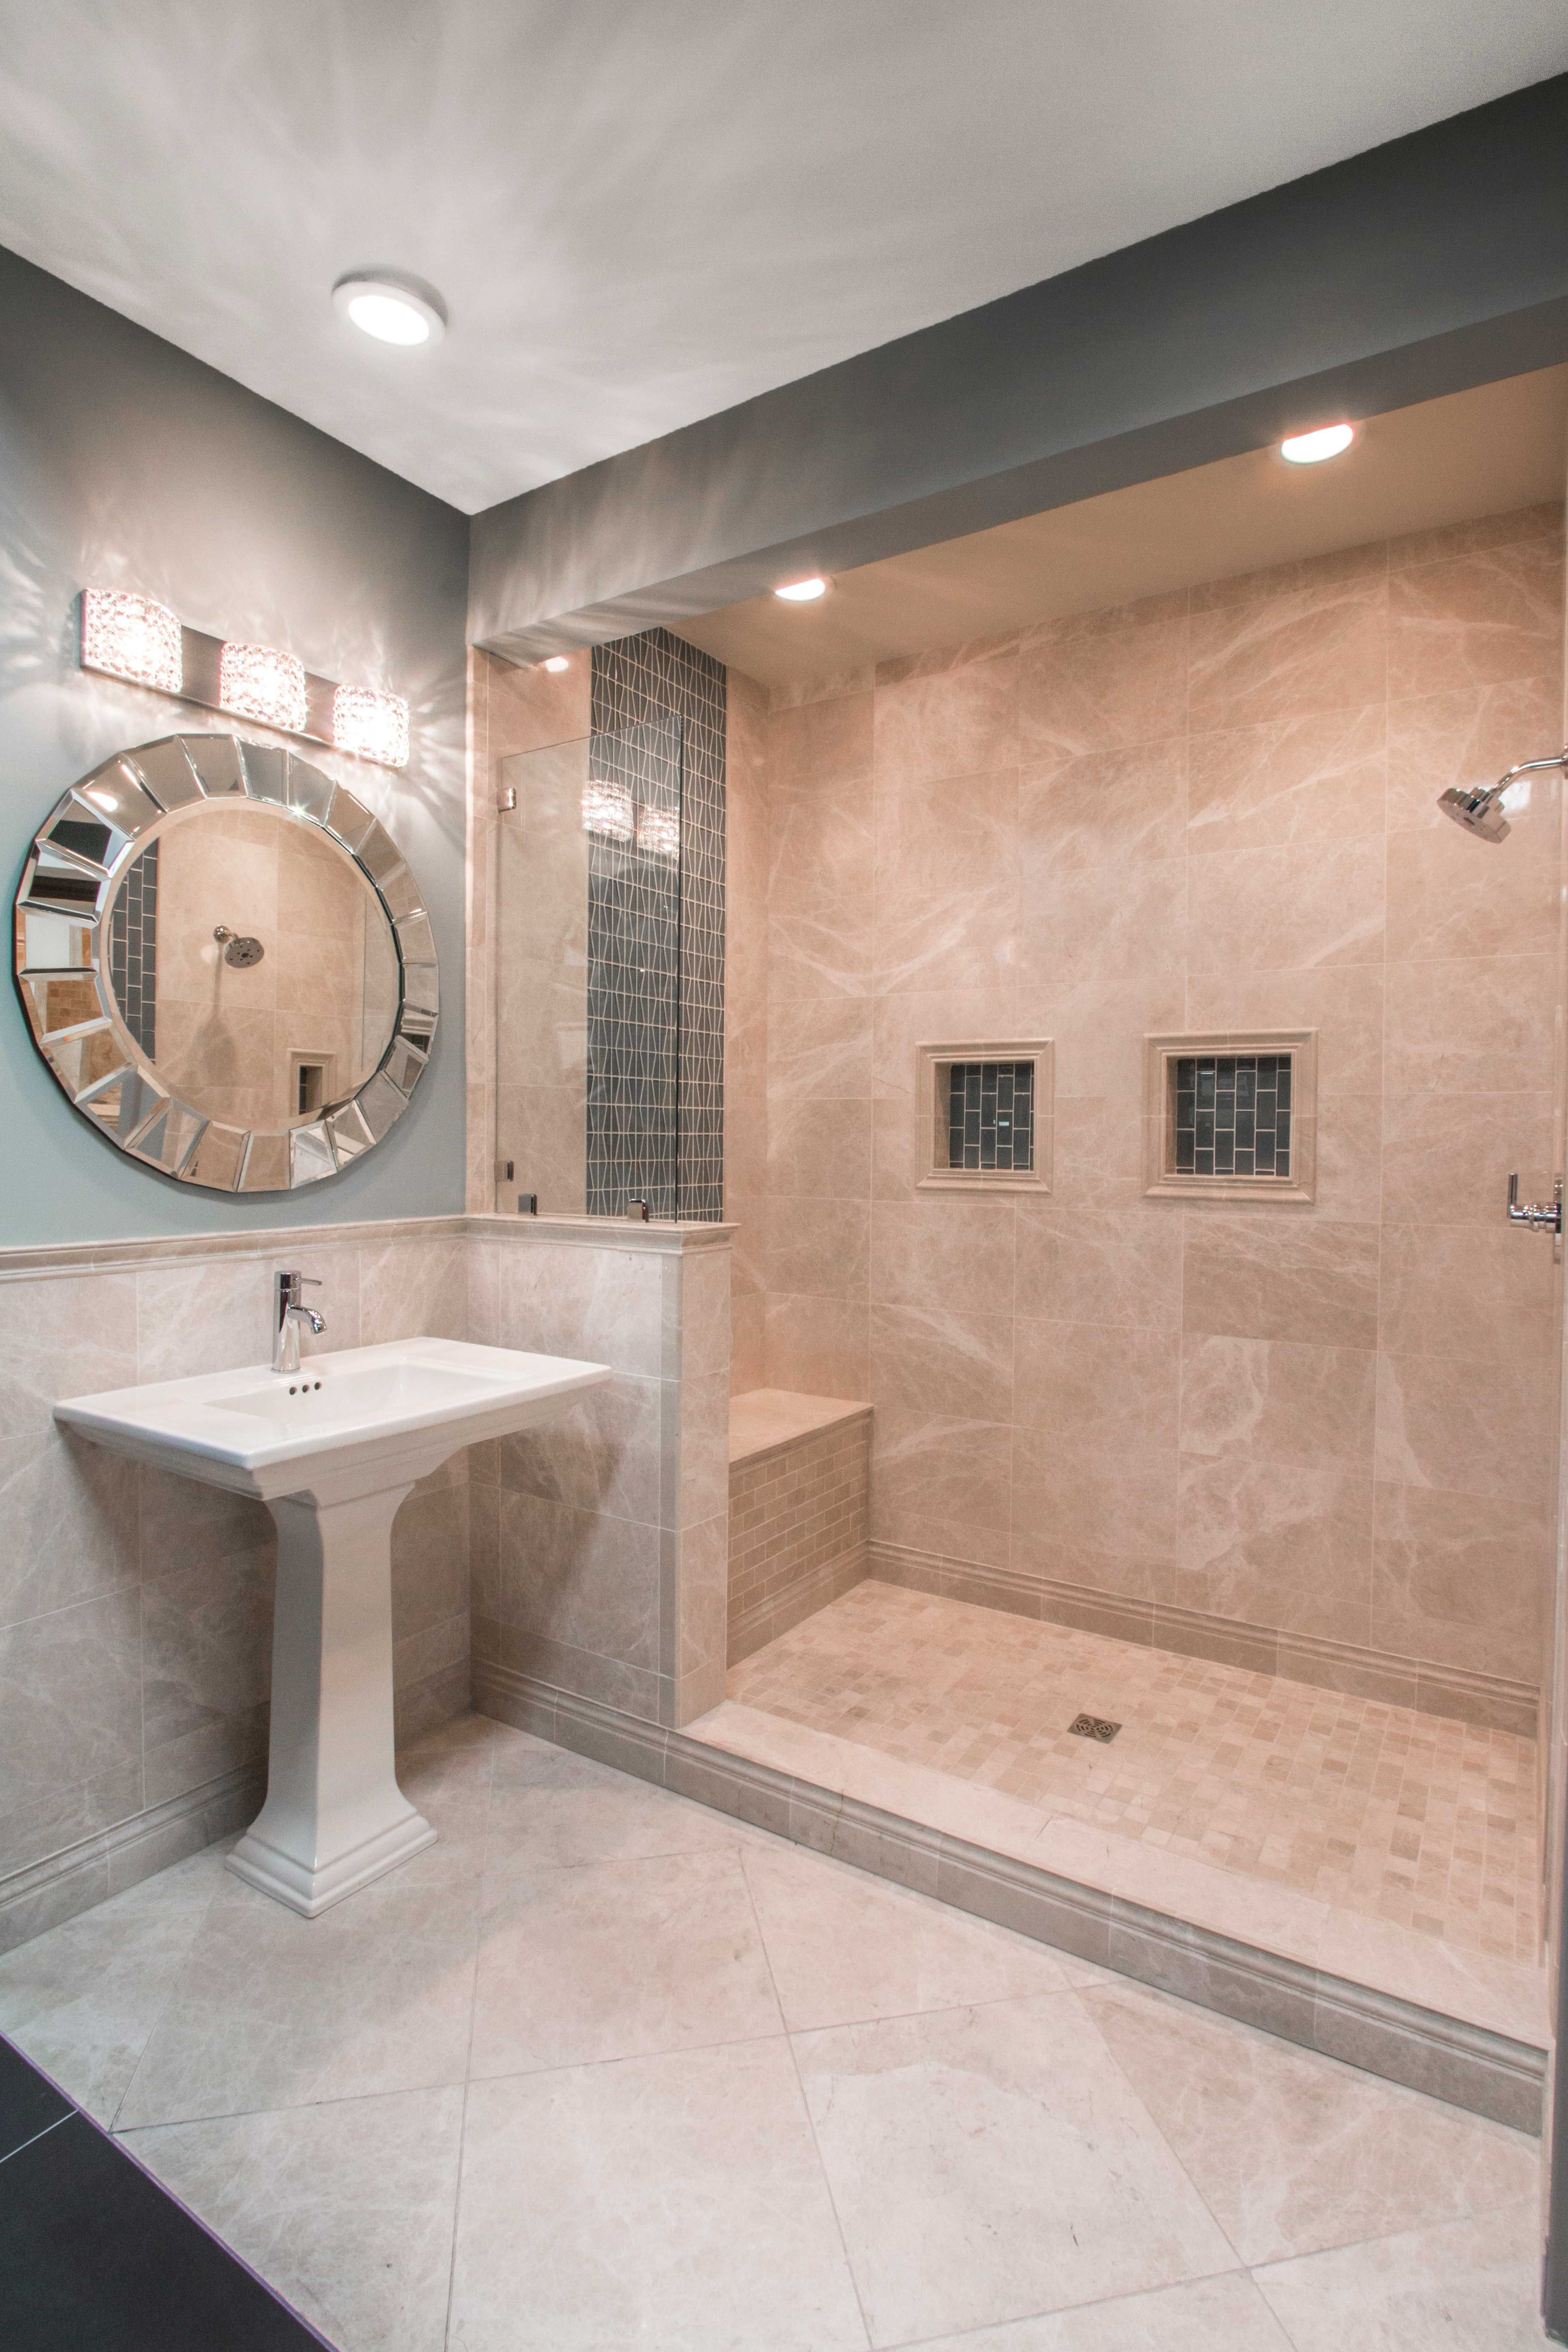 Elegant Beige Taupe And Cream Colored Bathroom Tile Oyster Polished Marble Floor Tile Cream Tile Bathroom White Marble Bathrooms Tile Bathroom